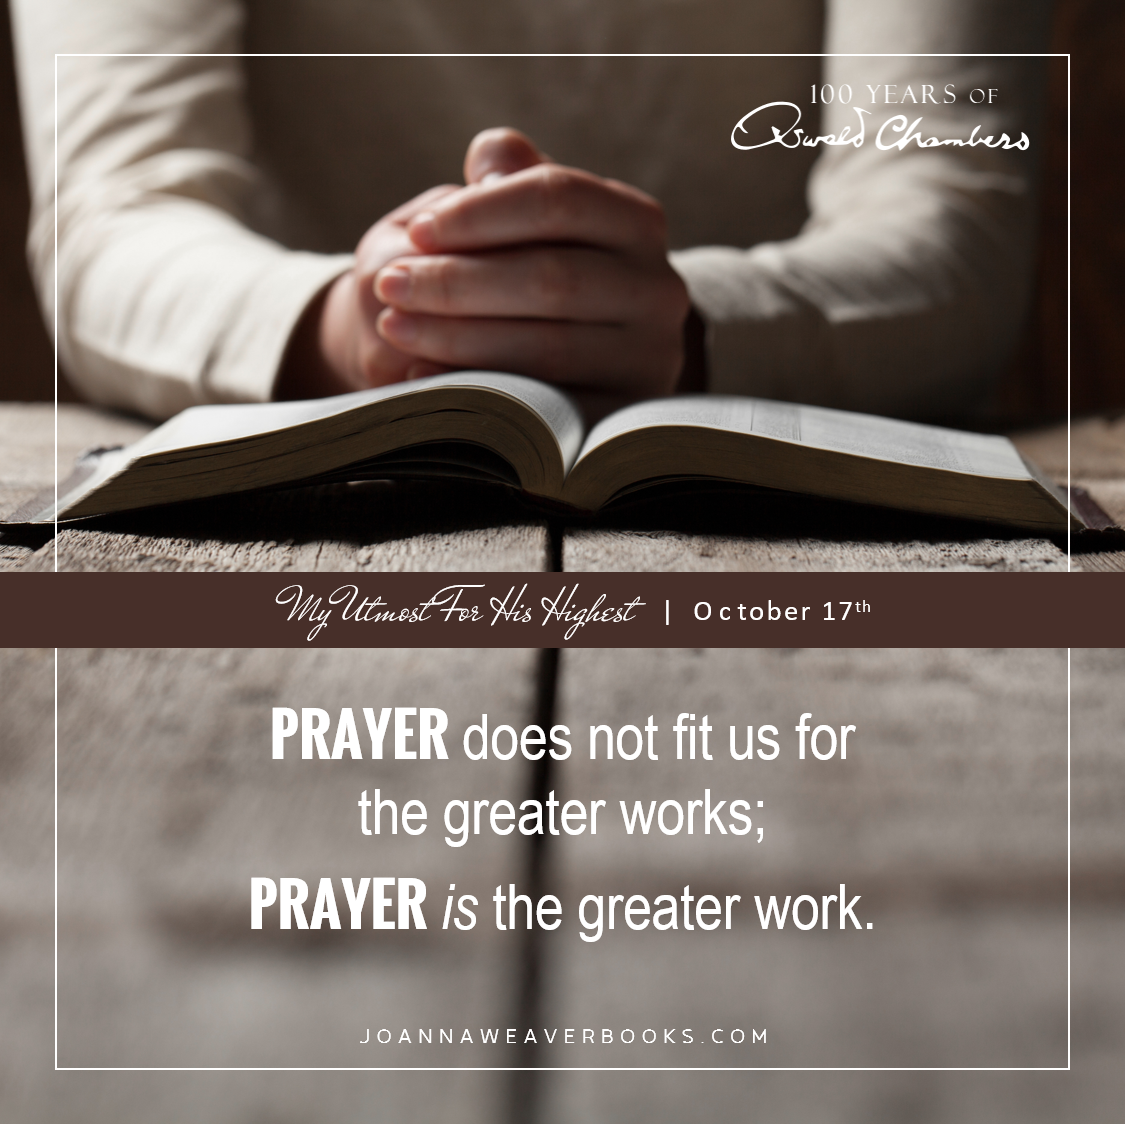 """""""Prayer does not fit us for the greater works; prayer is the greater work."""" My Utmost for His Highest - October 13"""